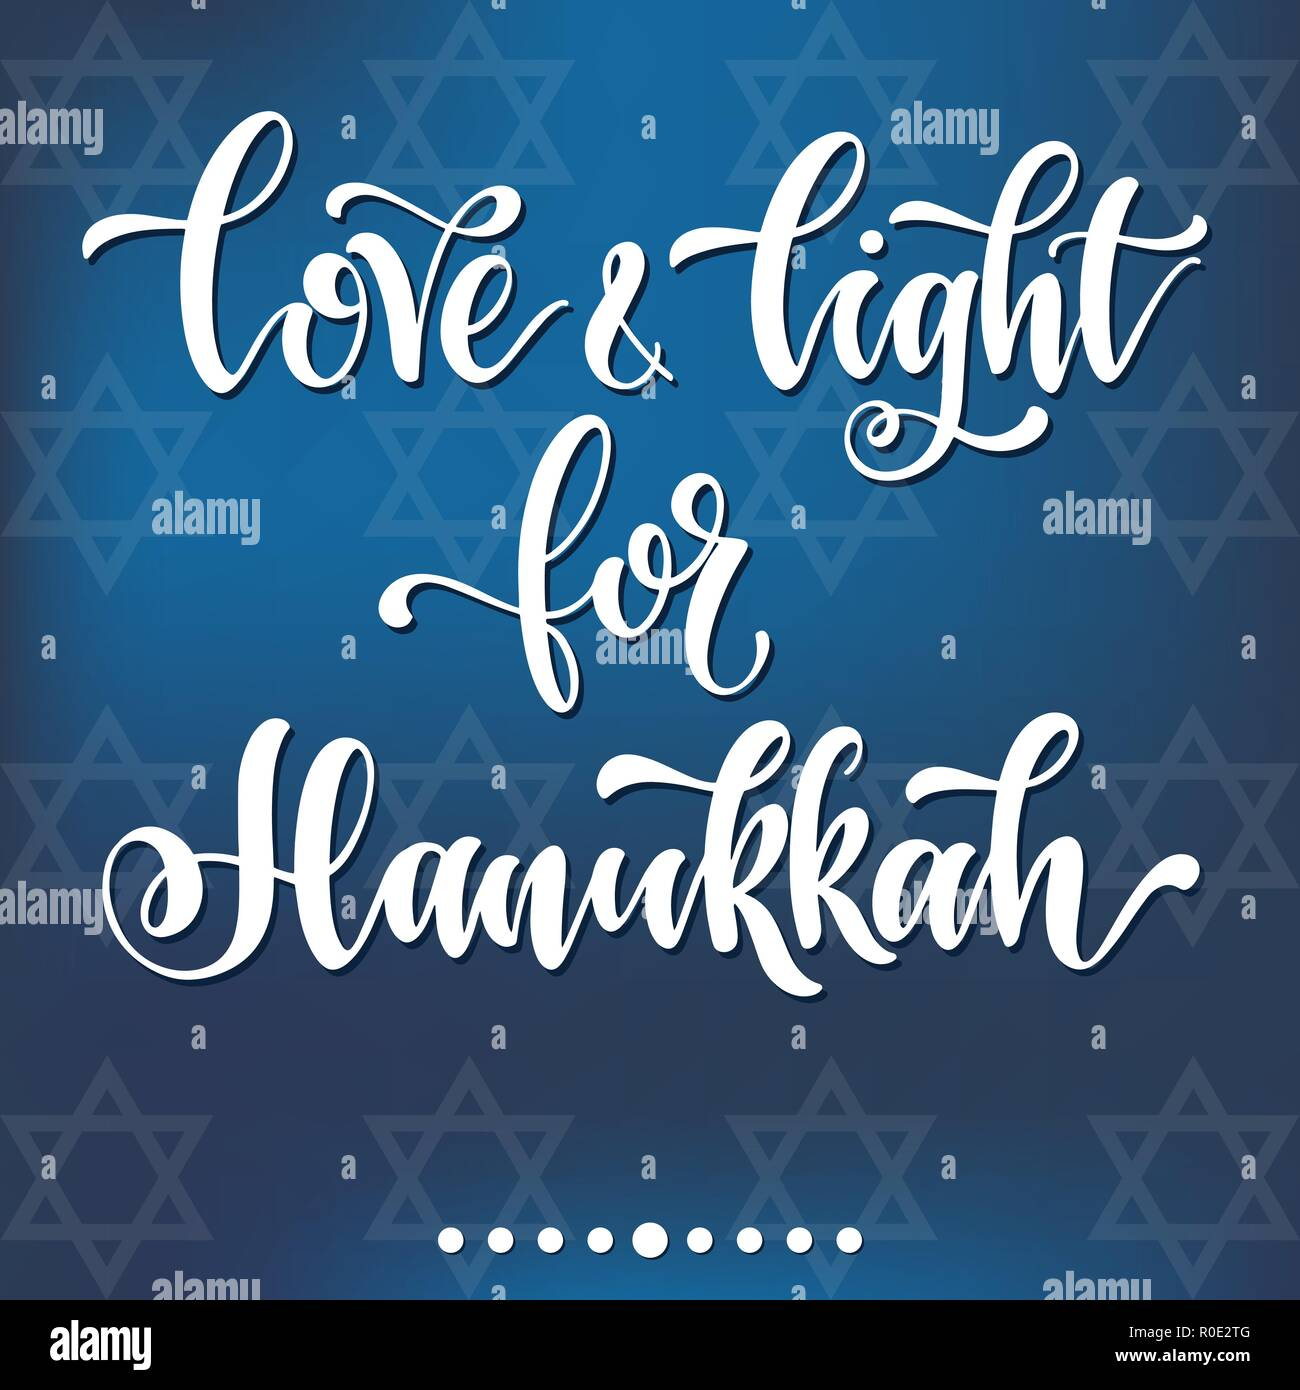 Love and light for Hahukkah. Happy hanukkah hand drawn lettering, dreidels and jewish stars. Elements for invitations, posters, greeting cards. T-shirt design. Seasons Greetings. - Stock Vector